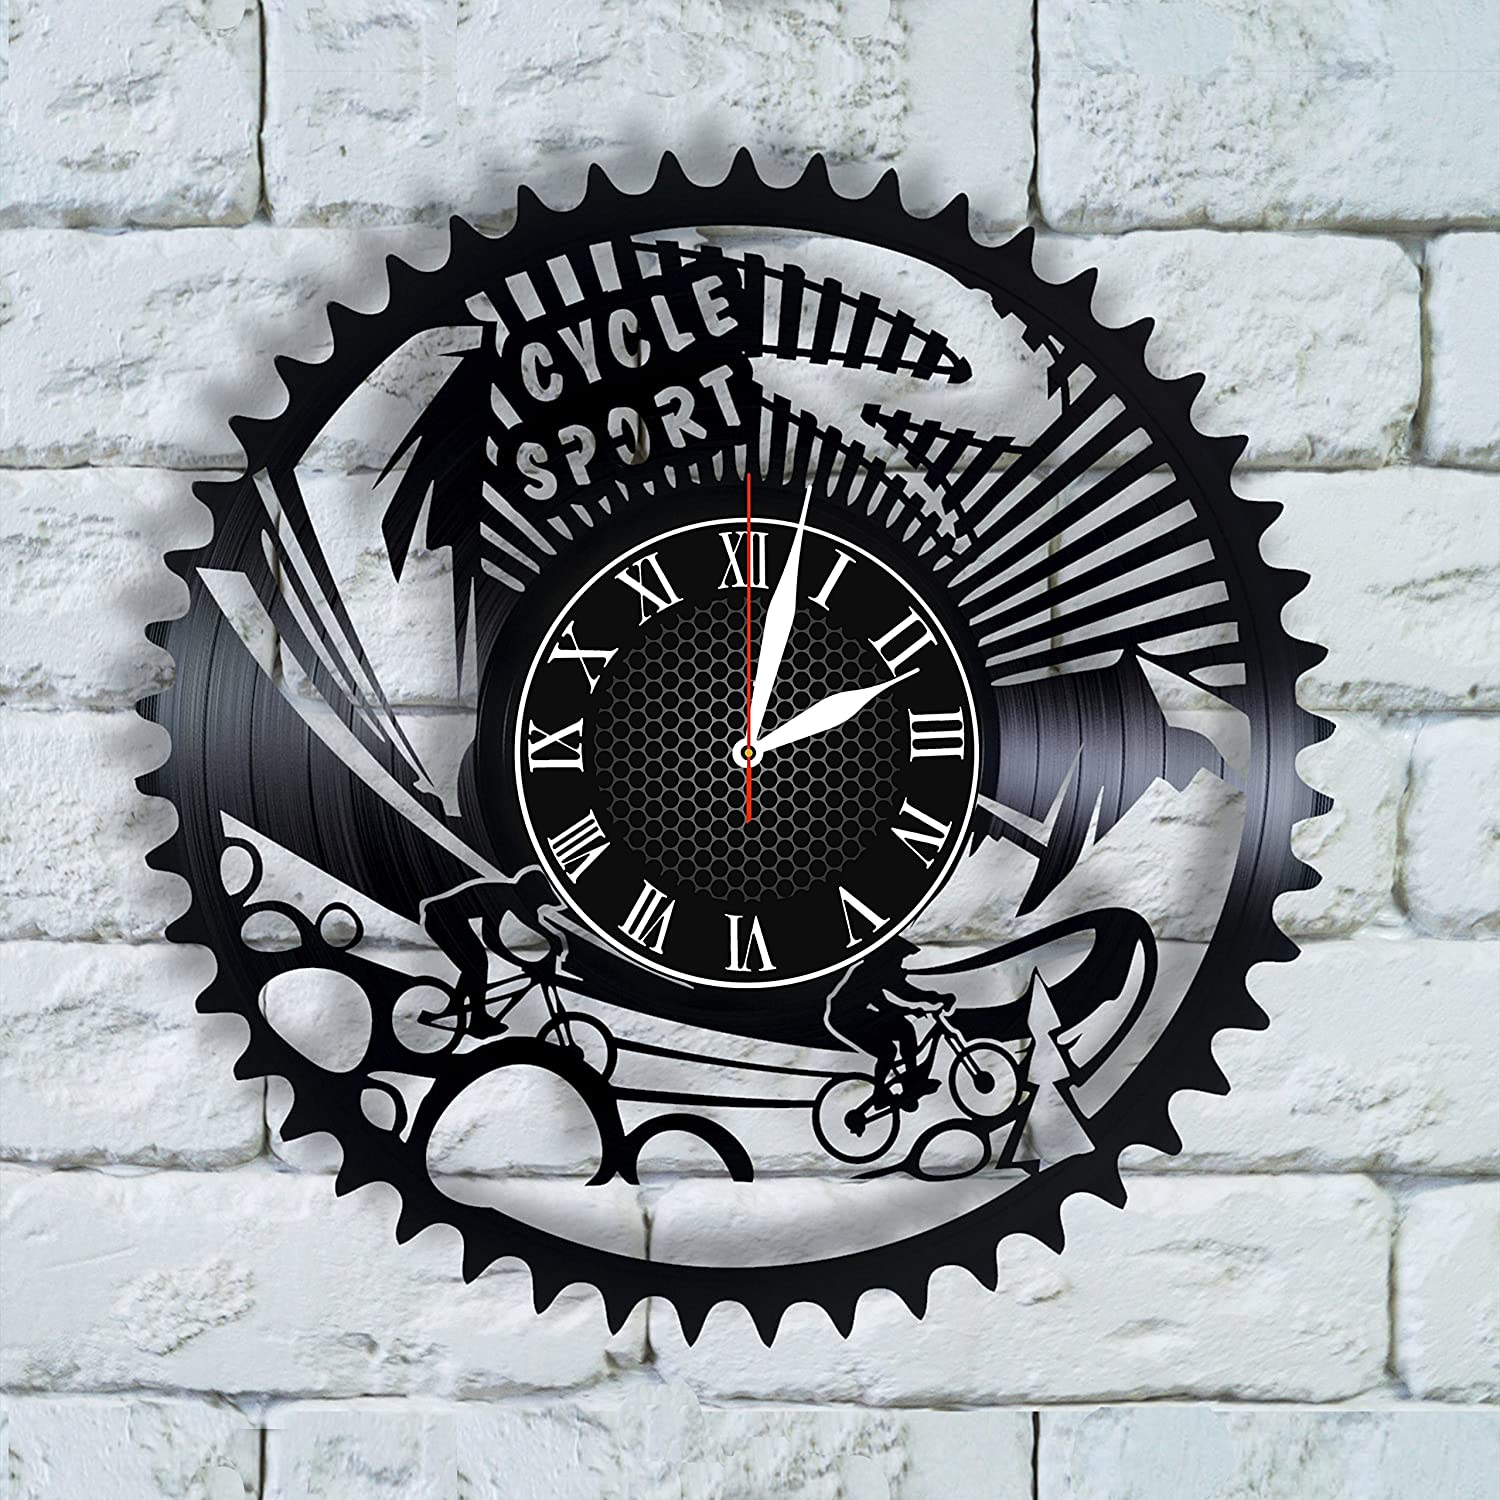 Cycling Gifts Bicycle Online limited product for Wall Art Men Max 64% OFF Vinyl